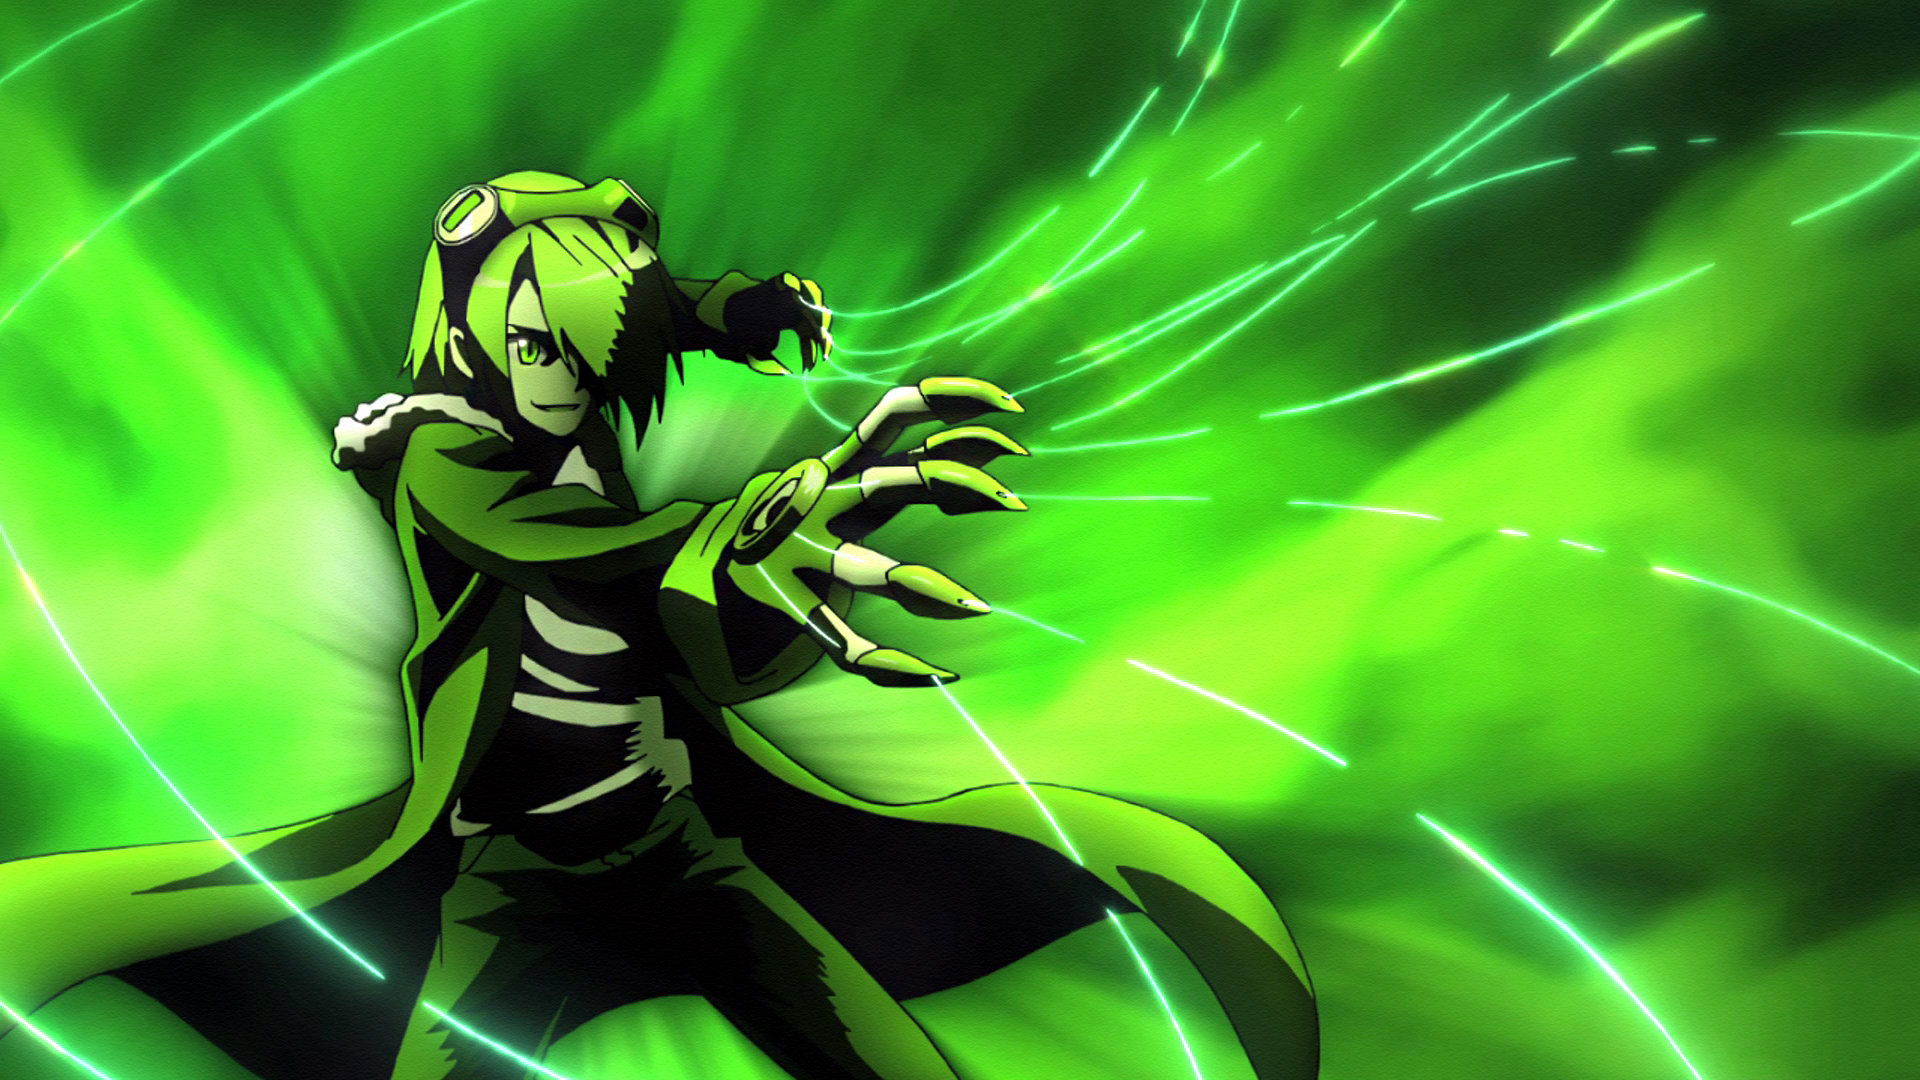 Download full hd 1080p Akame Ga Kill! desktop wallpaper ID:207966 for free